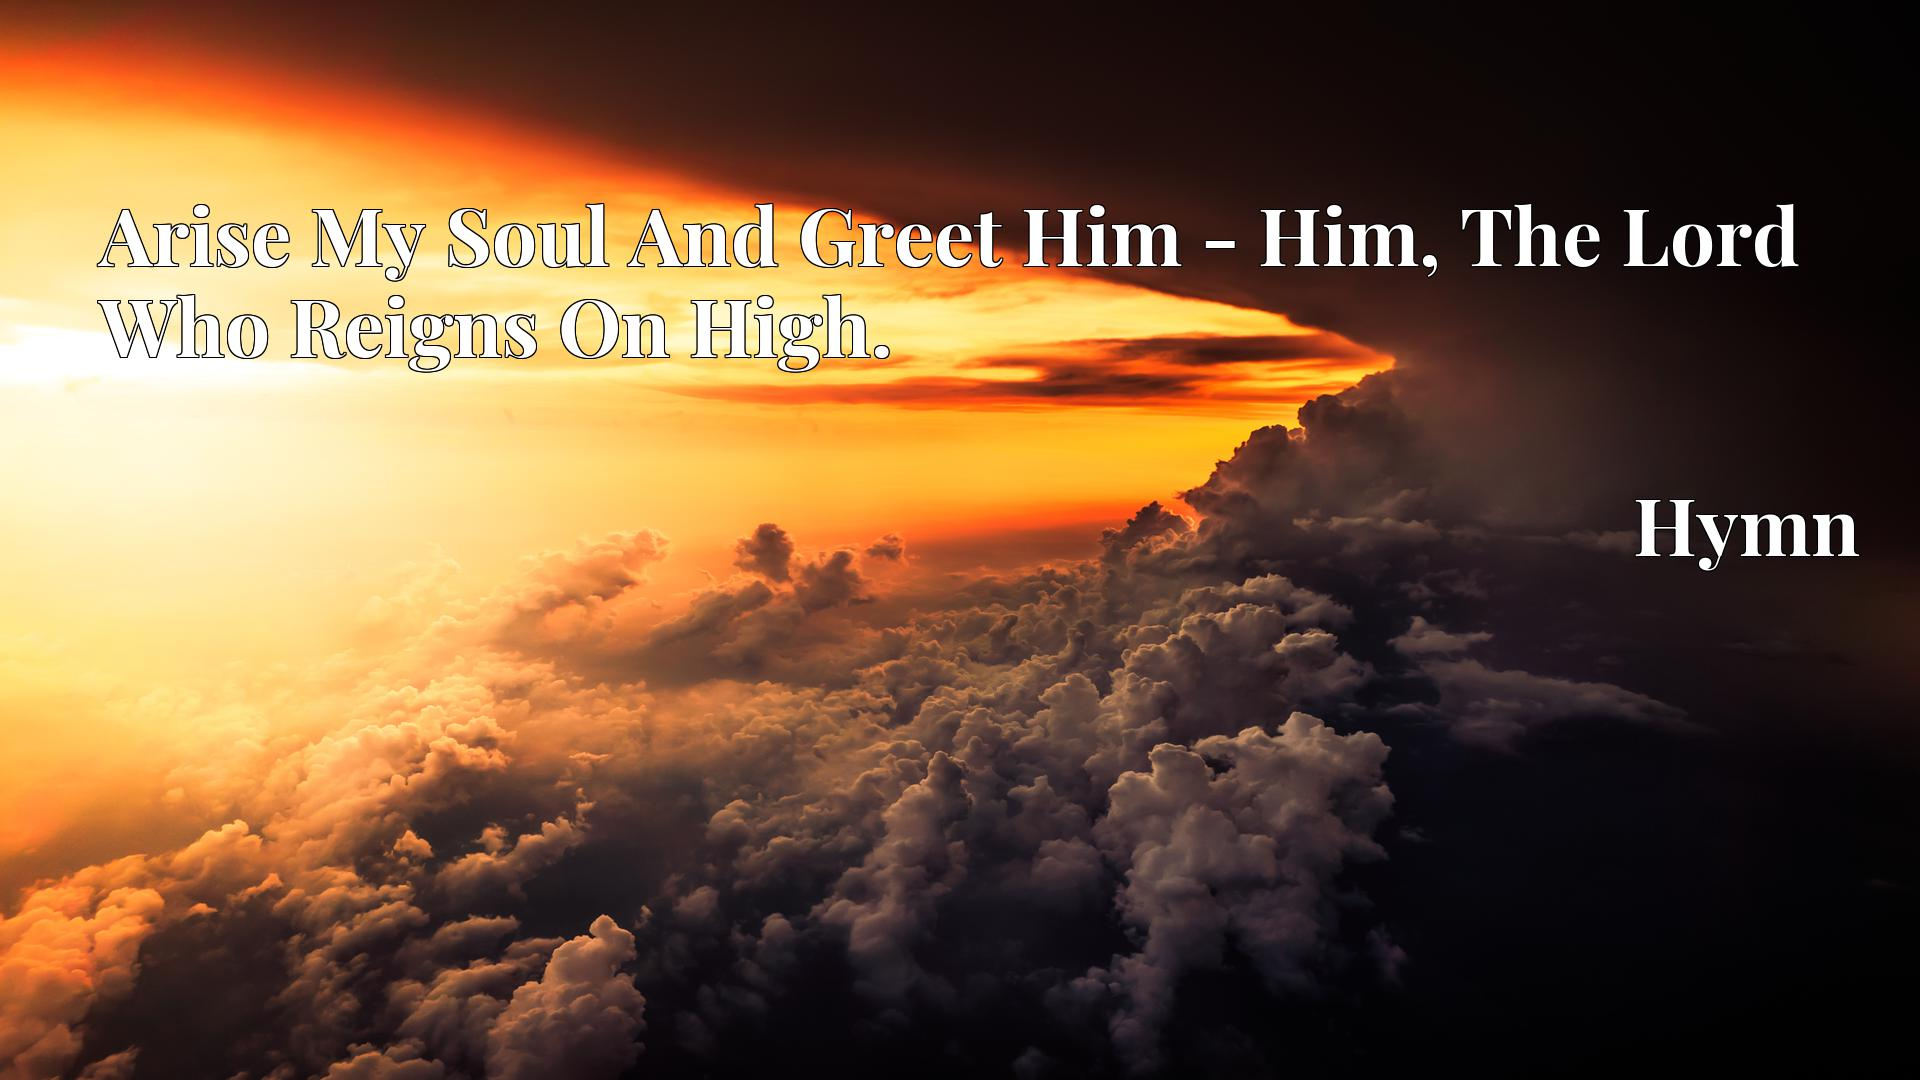 Arise My Soul And Greet Him - Him, The Lord Who Reigns On High. - Hymn